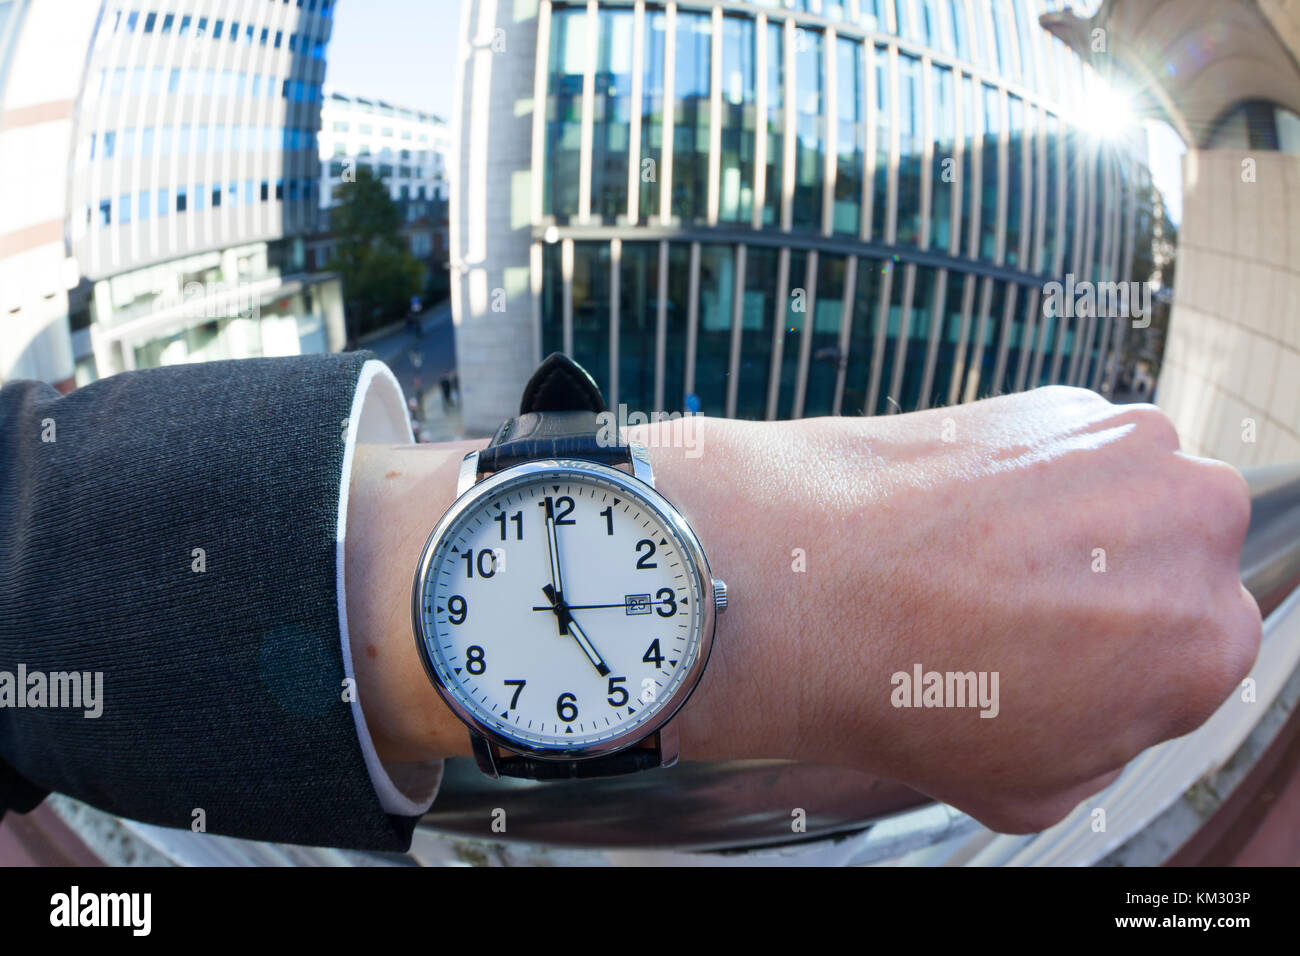 Close up of a Caucasian man wearing a wrist watch showing the time 5:00 - Stock Image